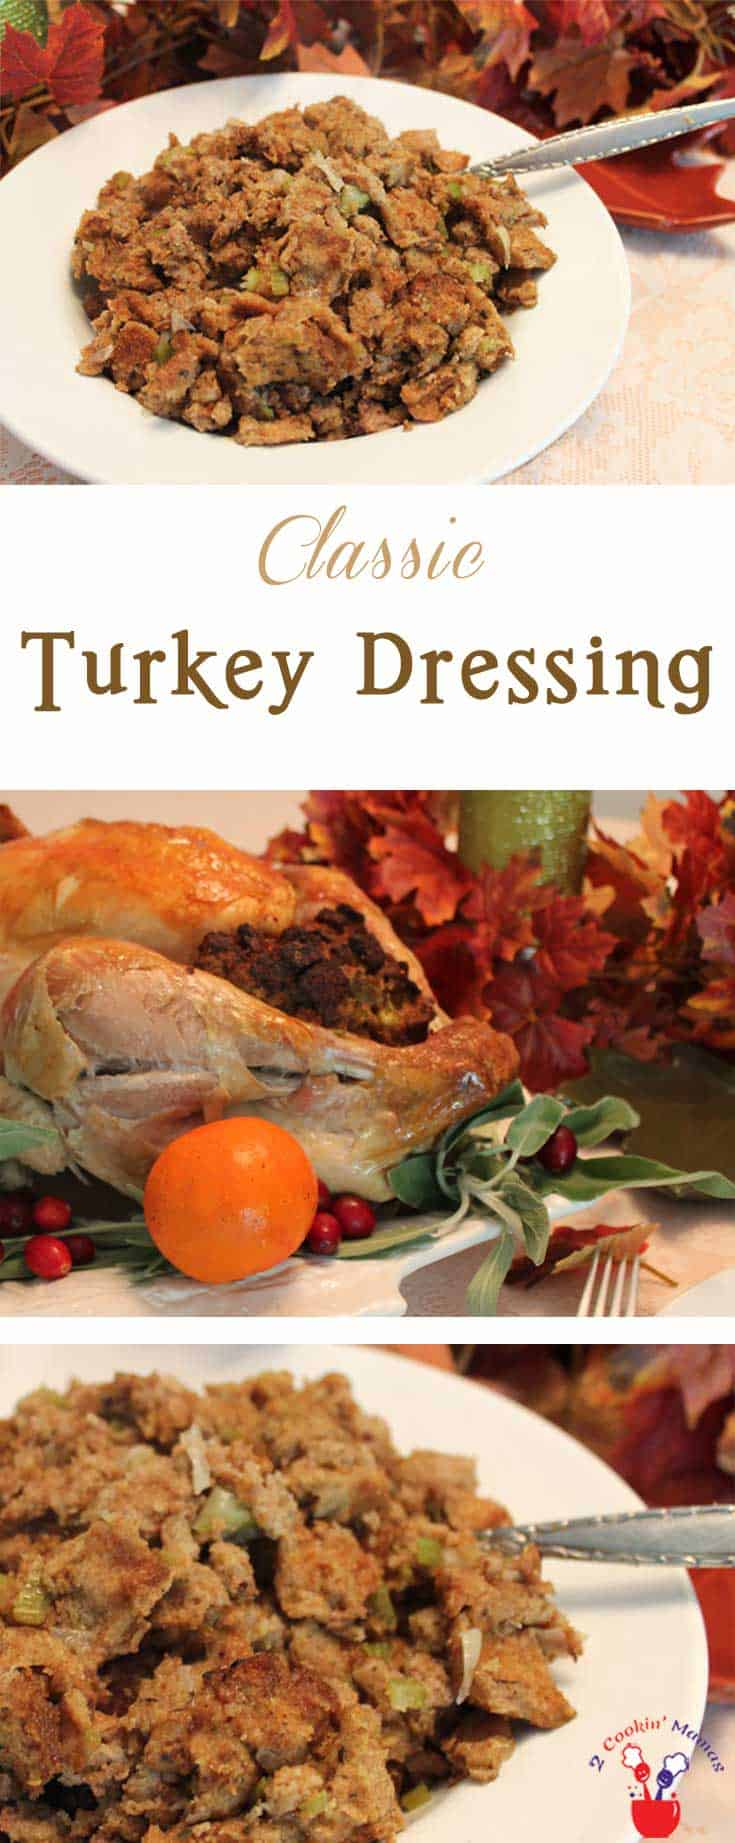 A turkey isn't complete without turkey dressing aka stuffing. This toasted seasoned bread, cooked & flavored inside the turkey, will set this holiday dinner side dish apart from all the rest. #Thanksgivingsidedish #turkeydressing #turkeystuffing #stuffing